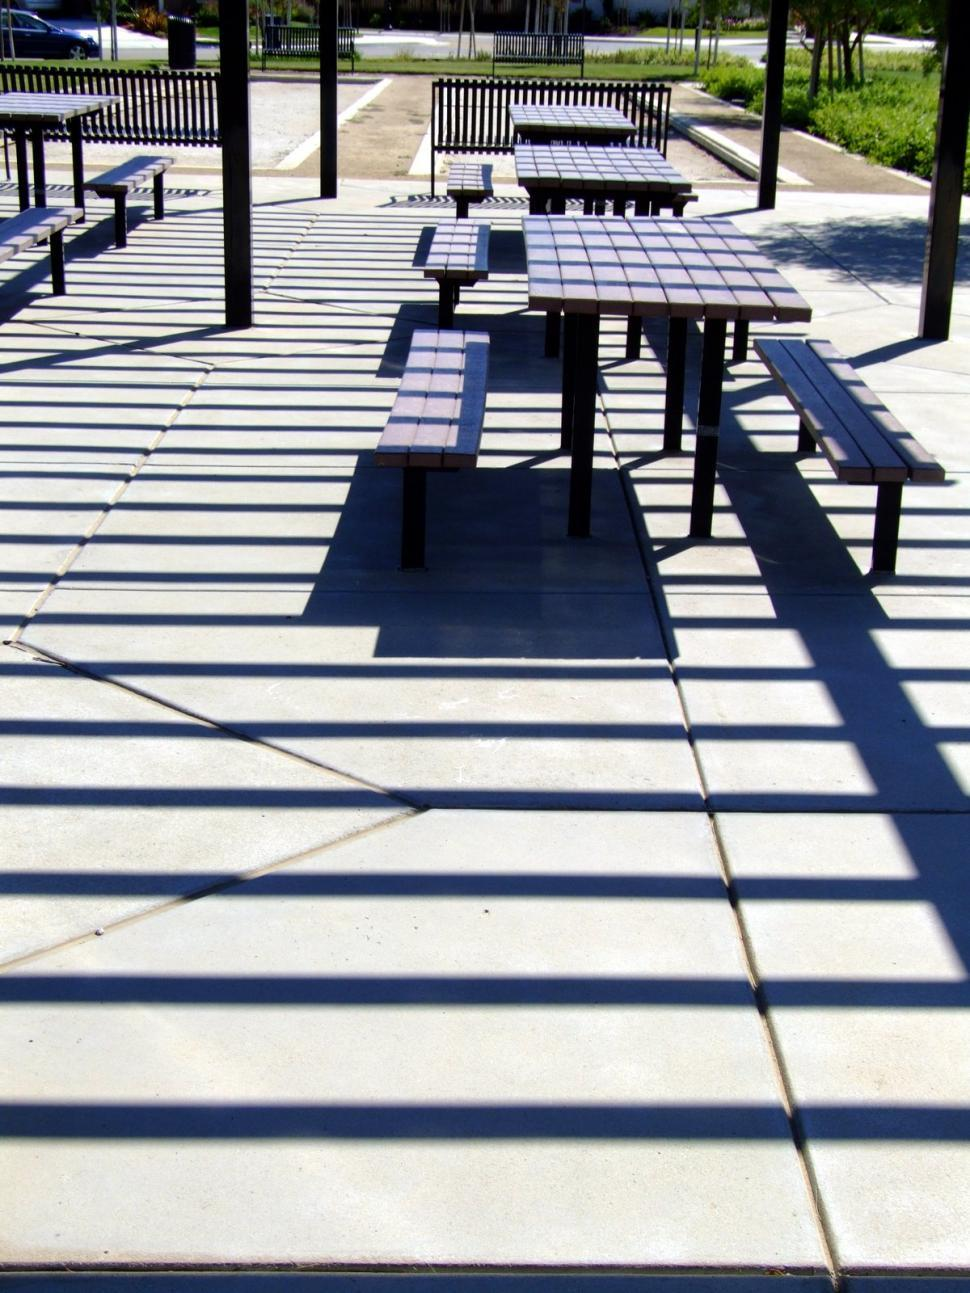 Download Free Stock HD Photo of Park Tables Online